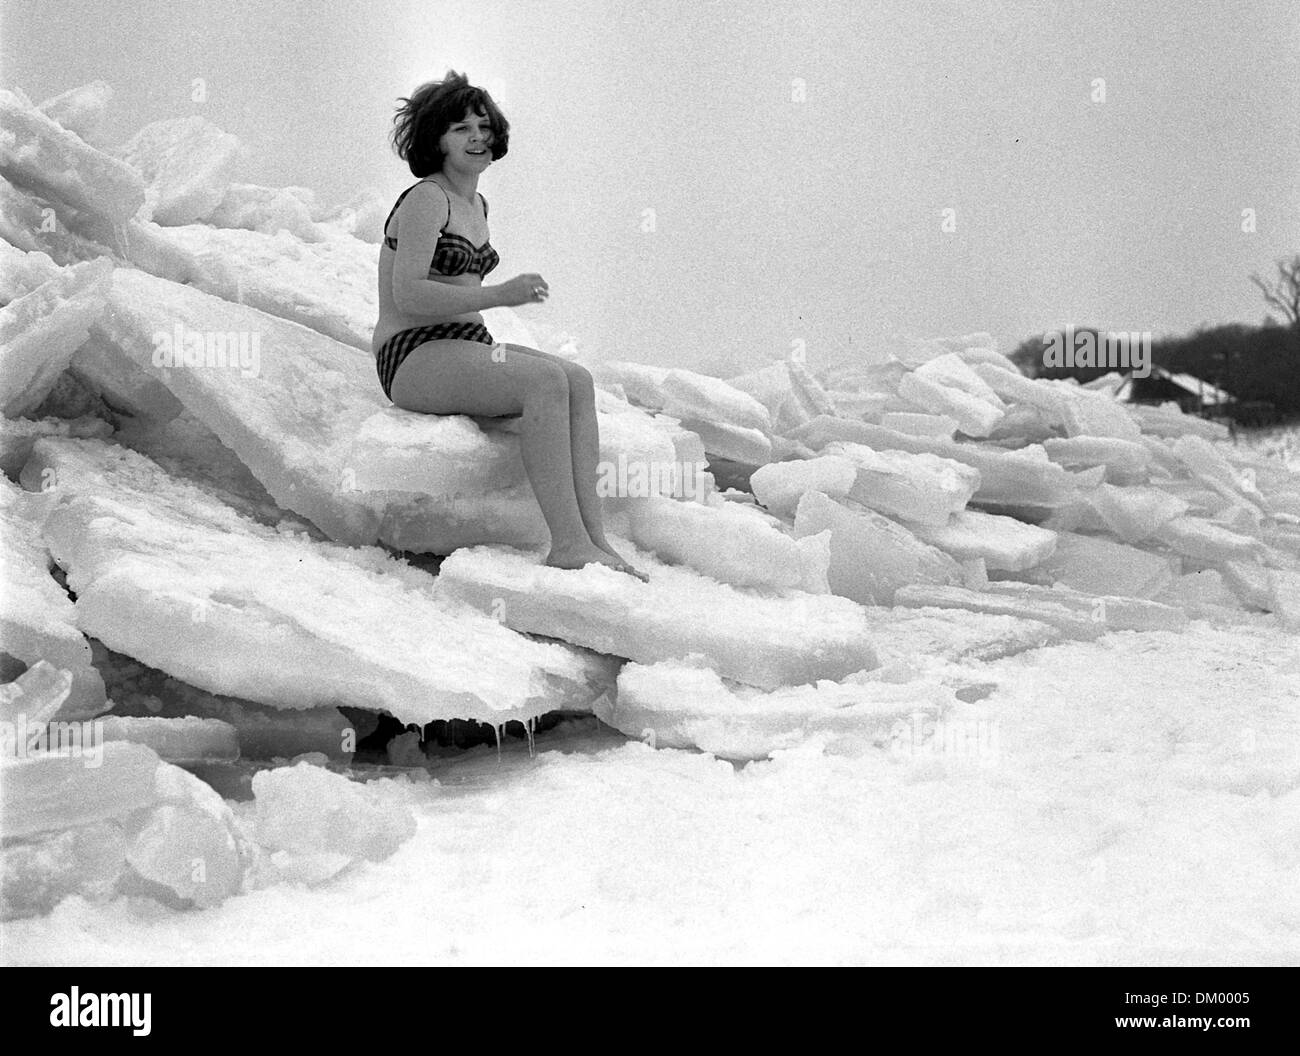 A young saleswoman from Saxony lets her photo taken on the ice for memories of the winterly Baltic Sea in January 1970. Photo: Jürgen Sindermann - Stock Image